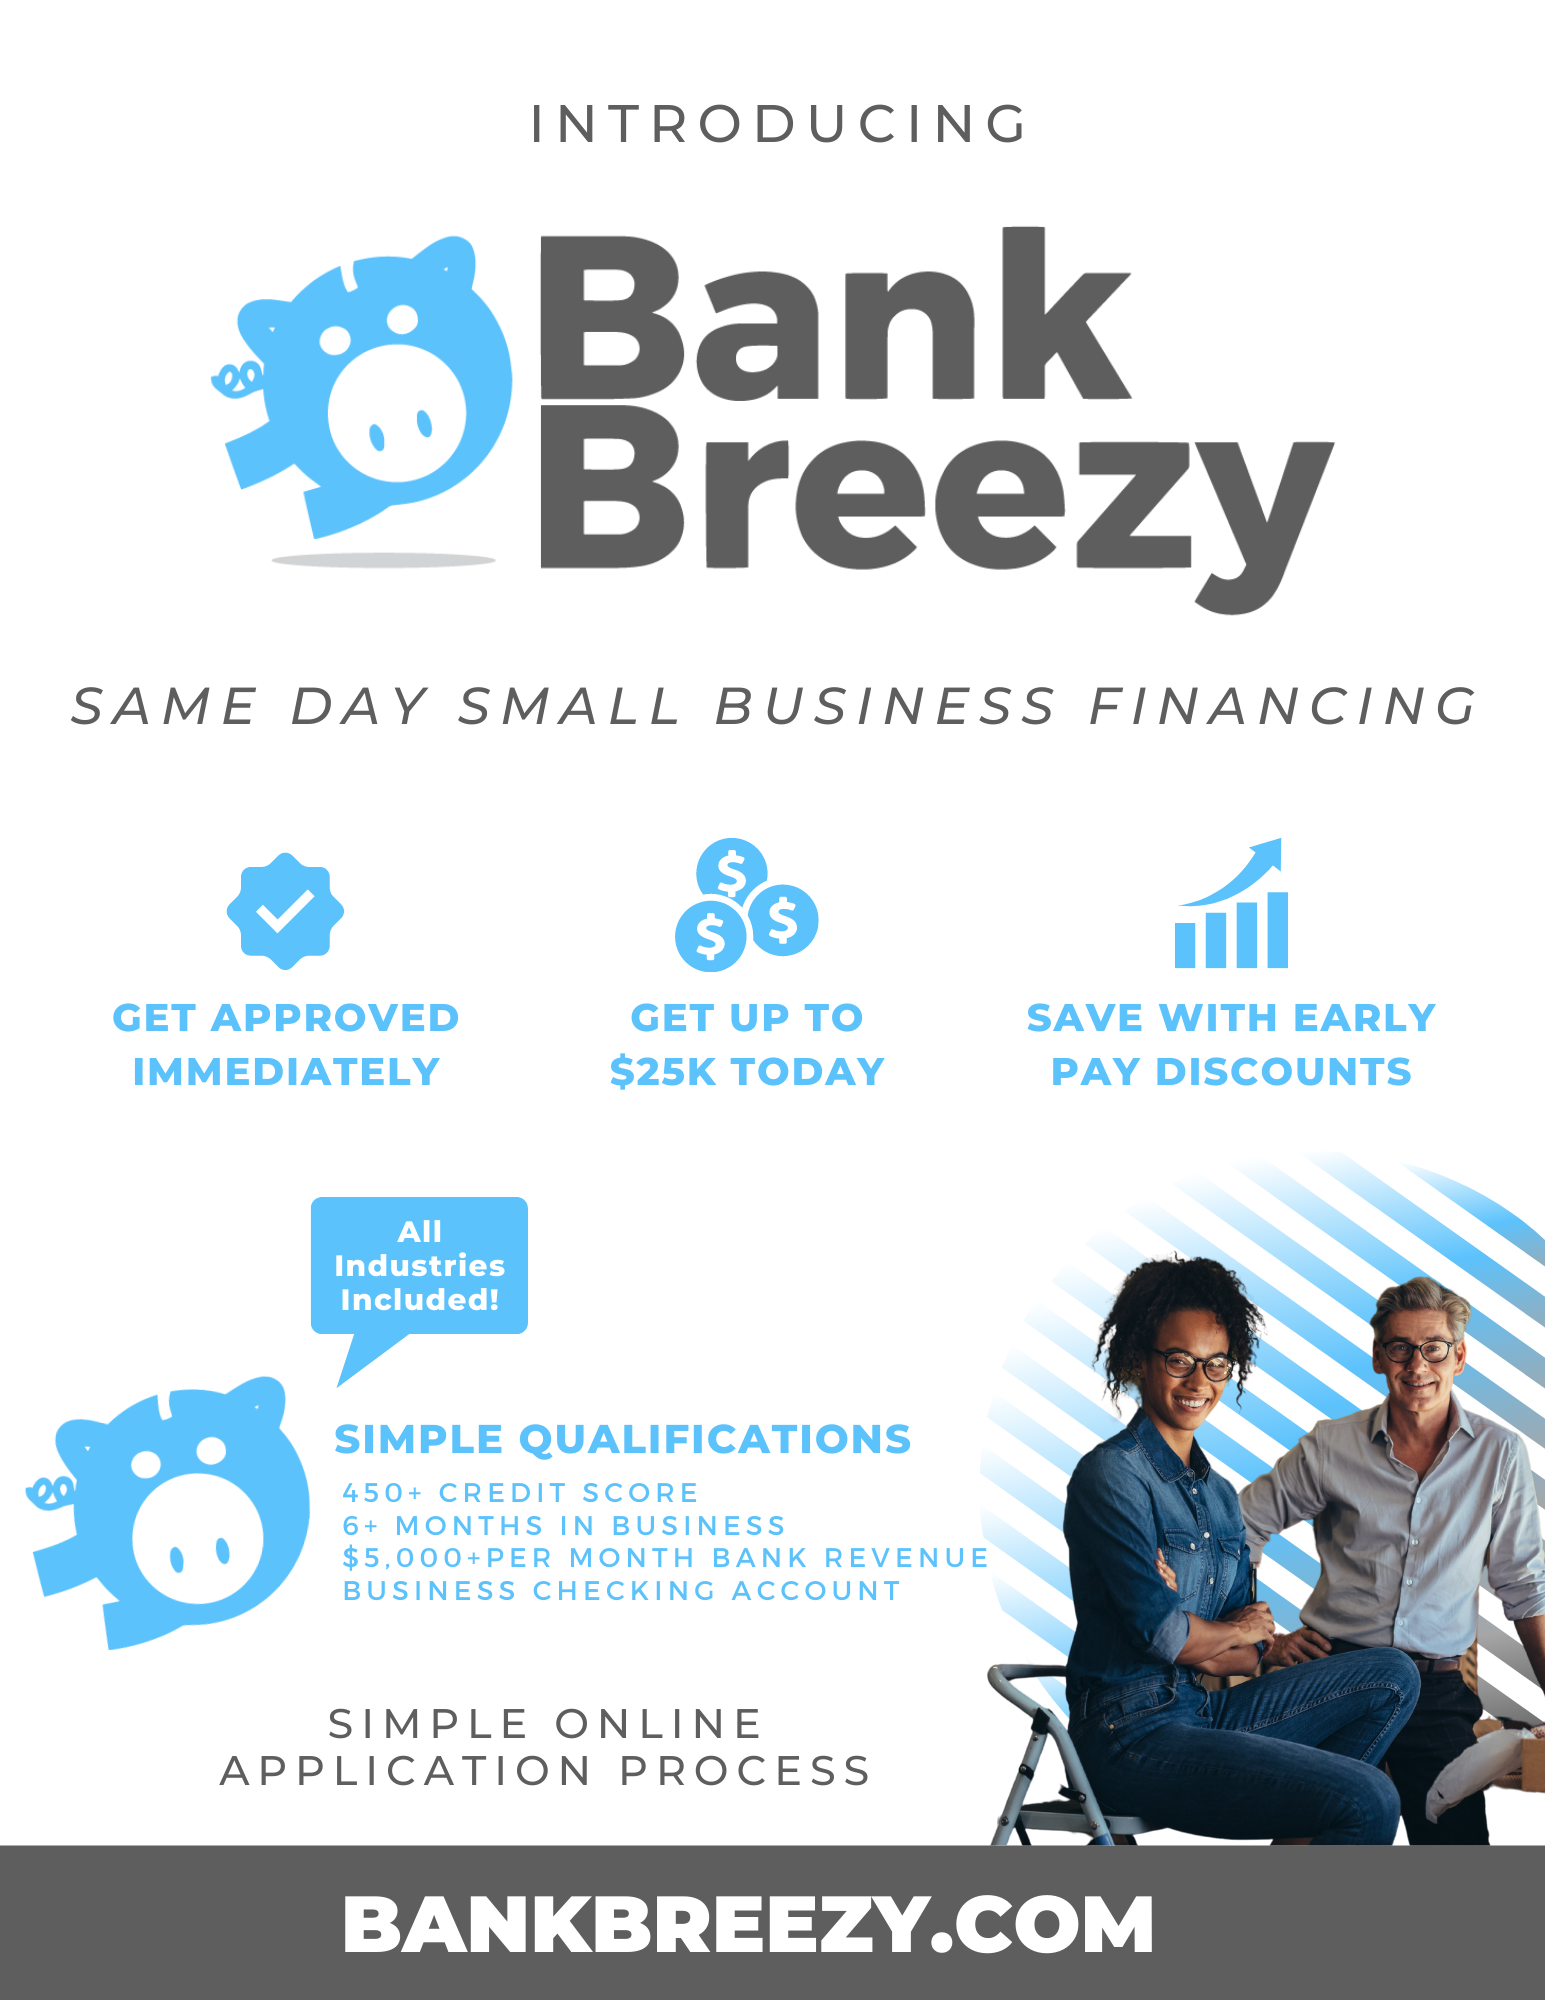 Small Business Funding Up To $25k Today